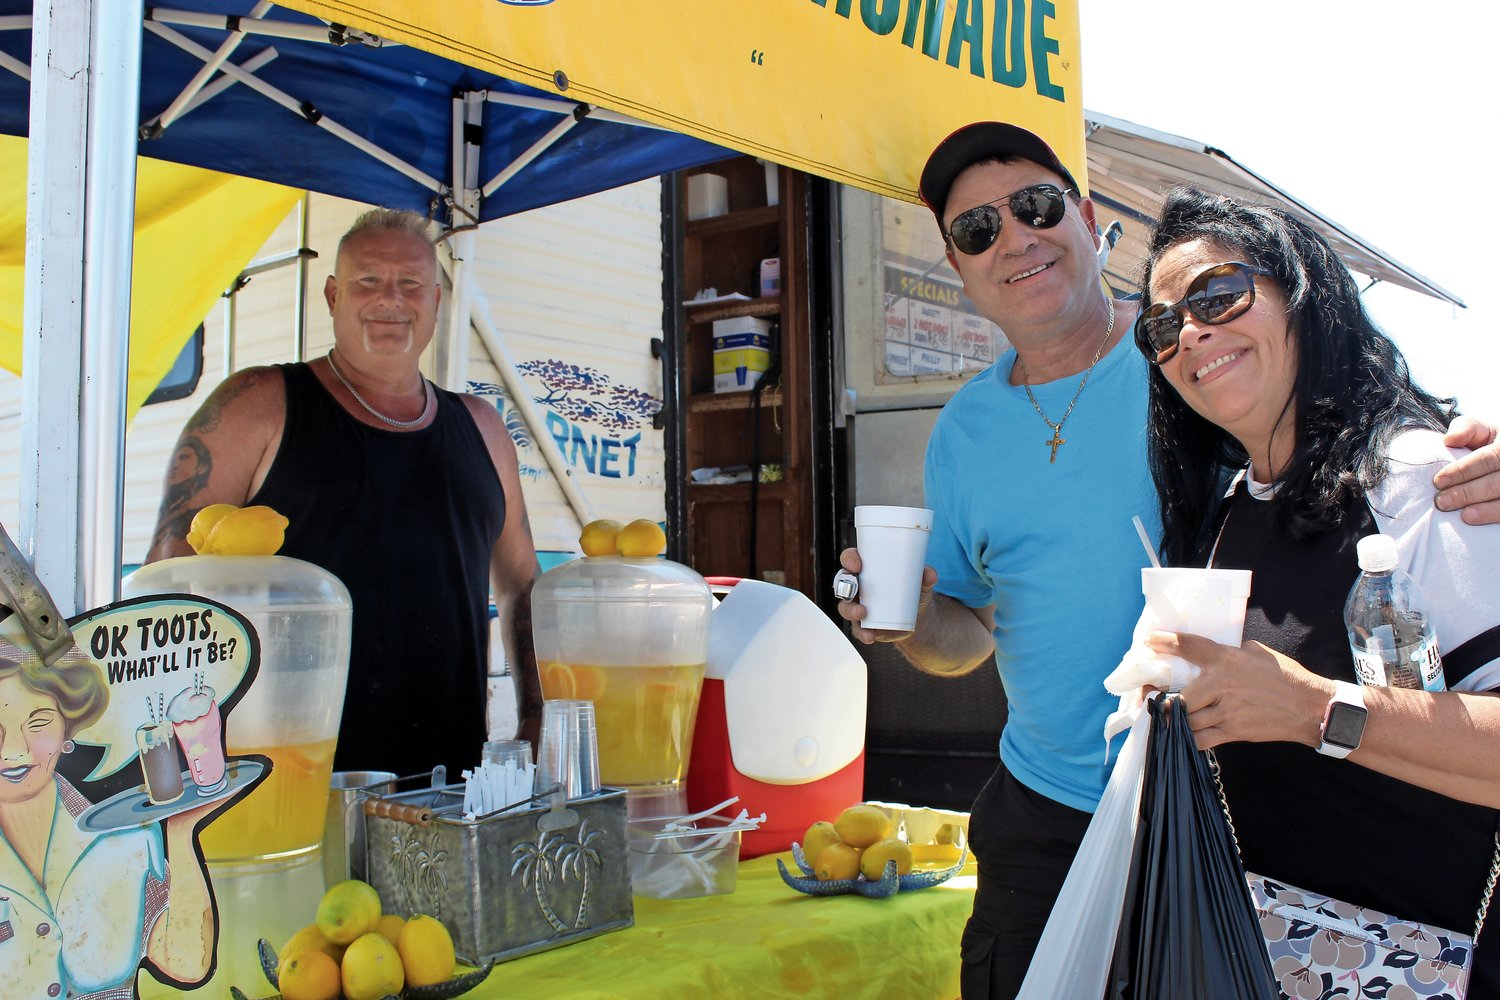 Sal Briganti, left, of Bellmore, kept shoppers satiated with lemonade, snacks and hot dogs. Babylon couple Bill and Sue Amato, right, were happy to oblige.